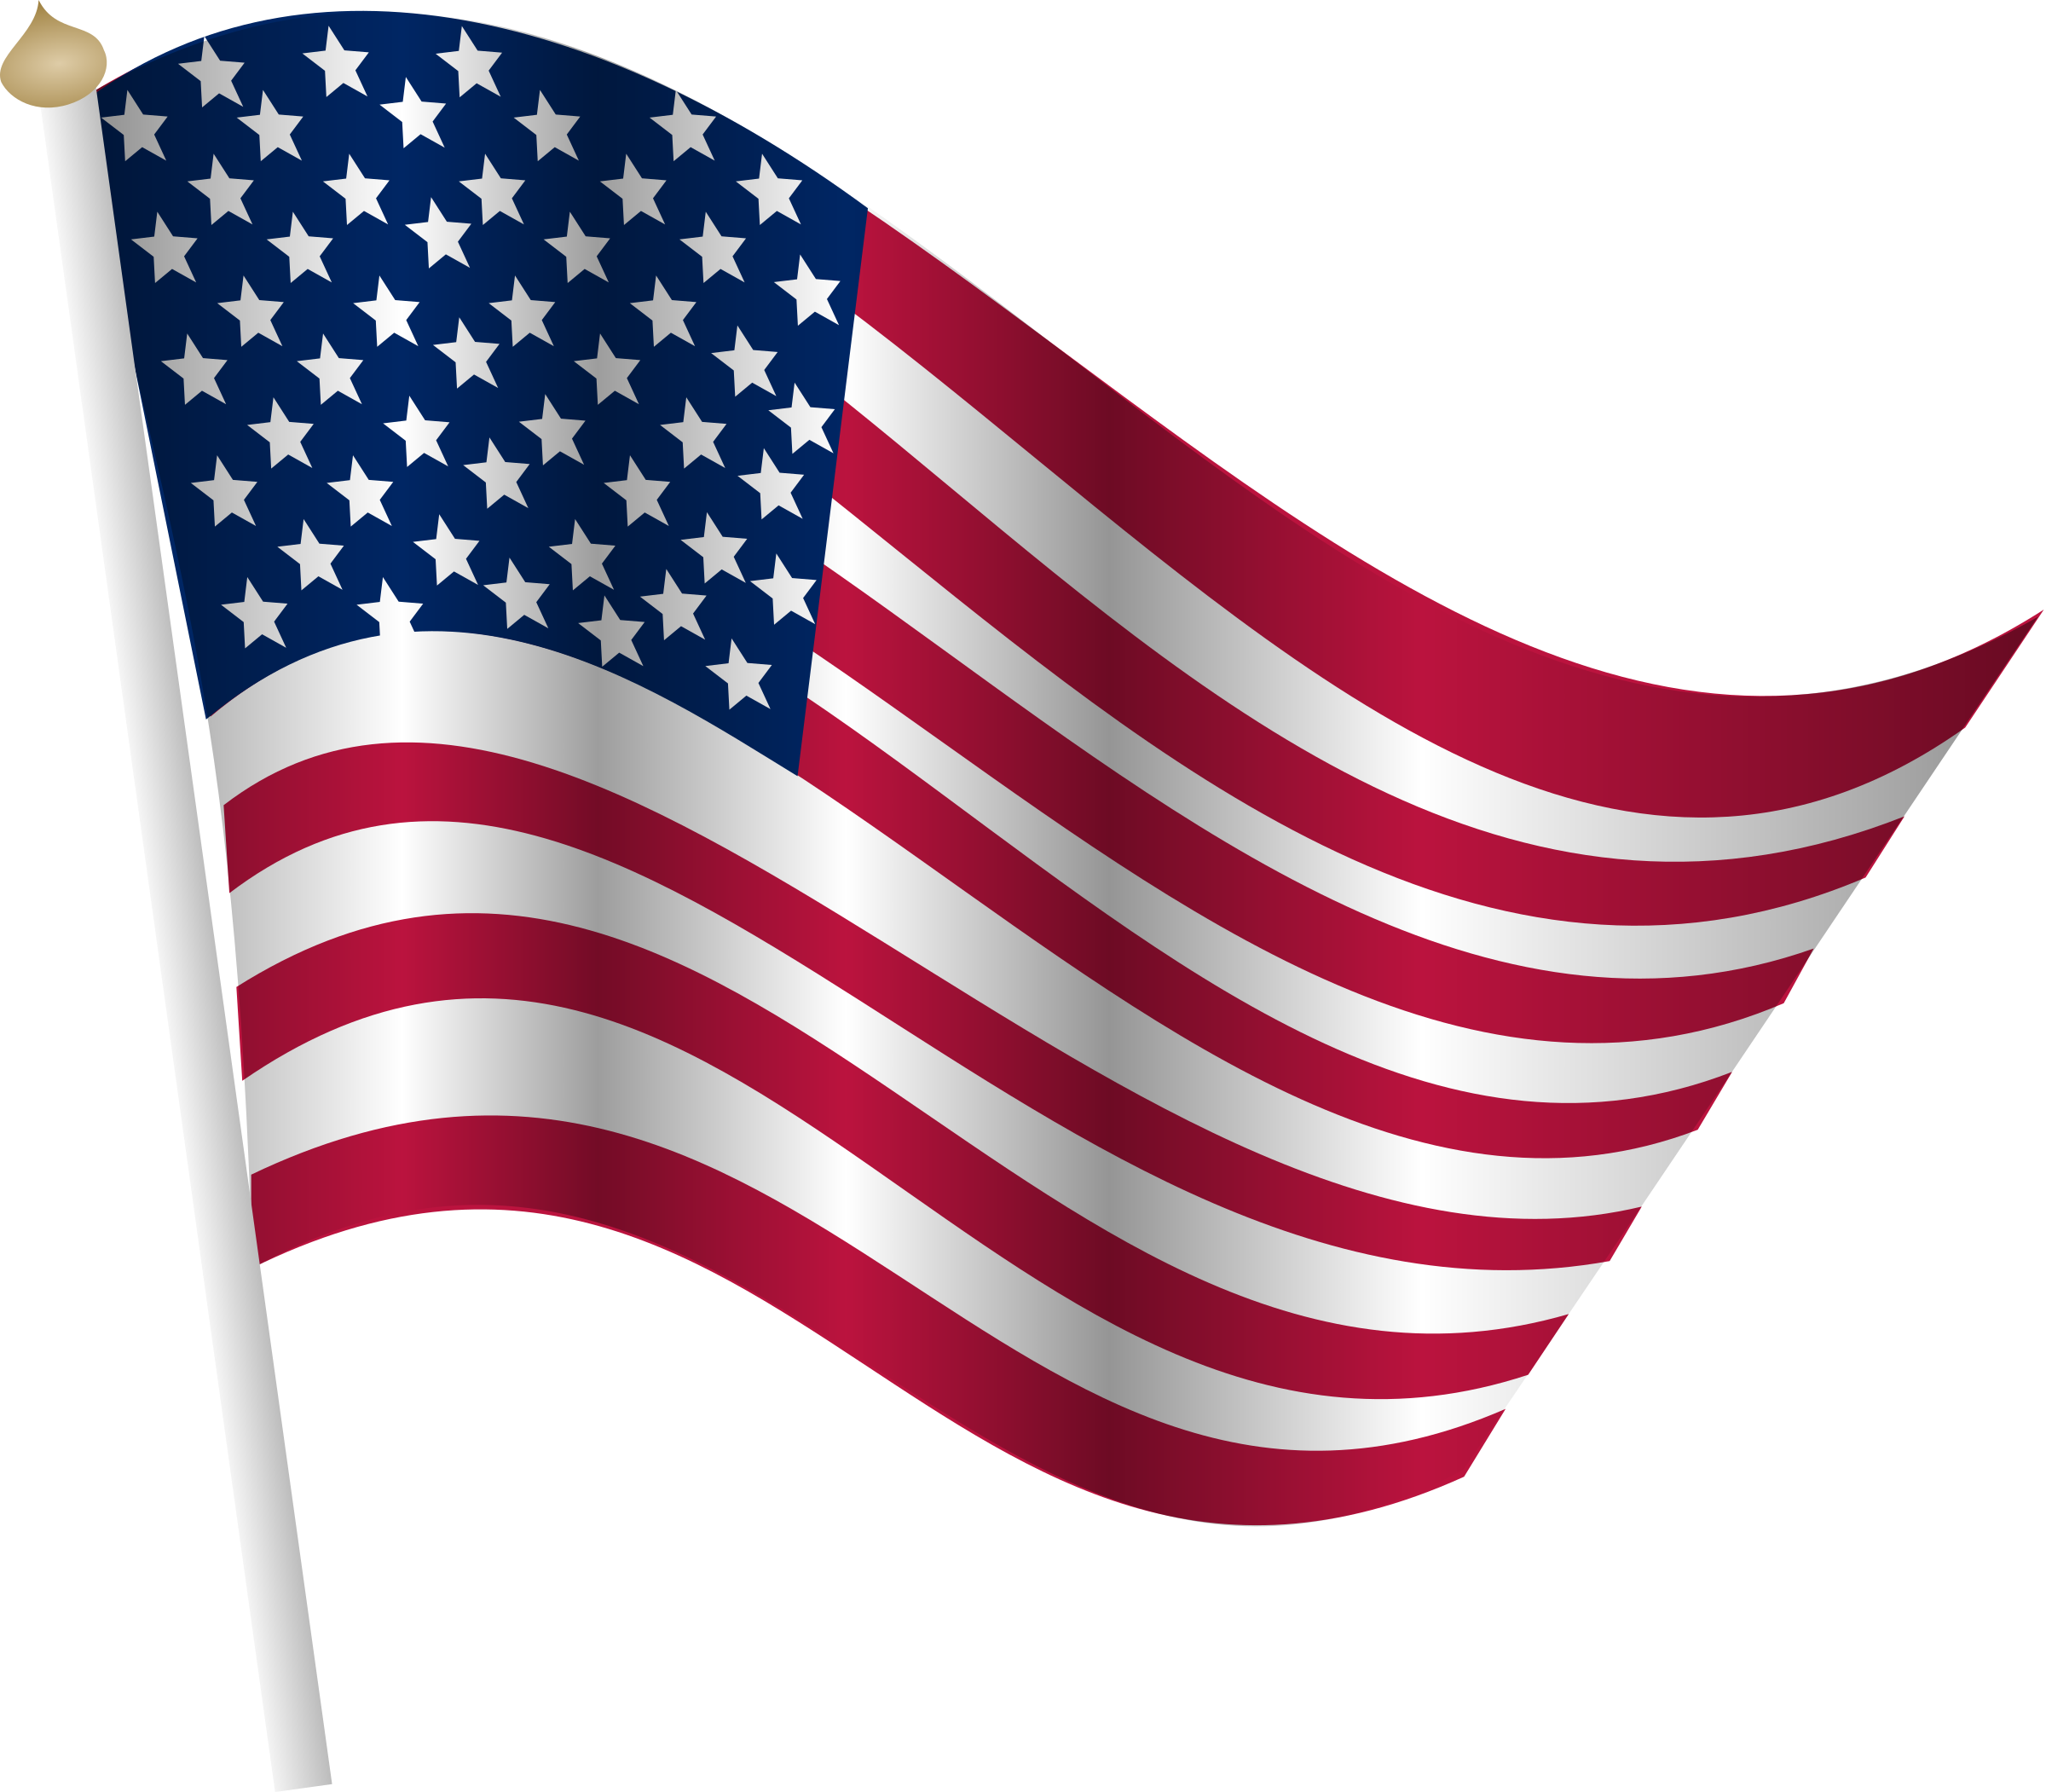 american flag fotolipm rich image and wallpaper #38745